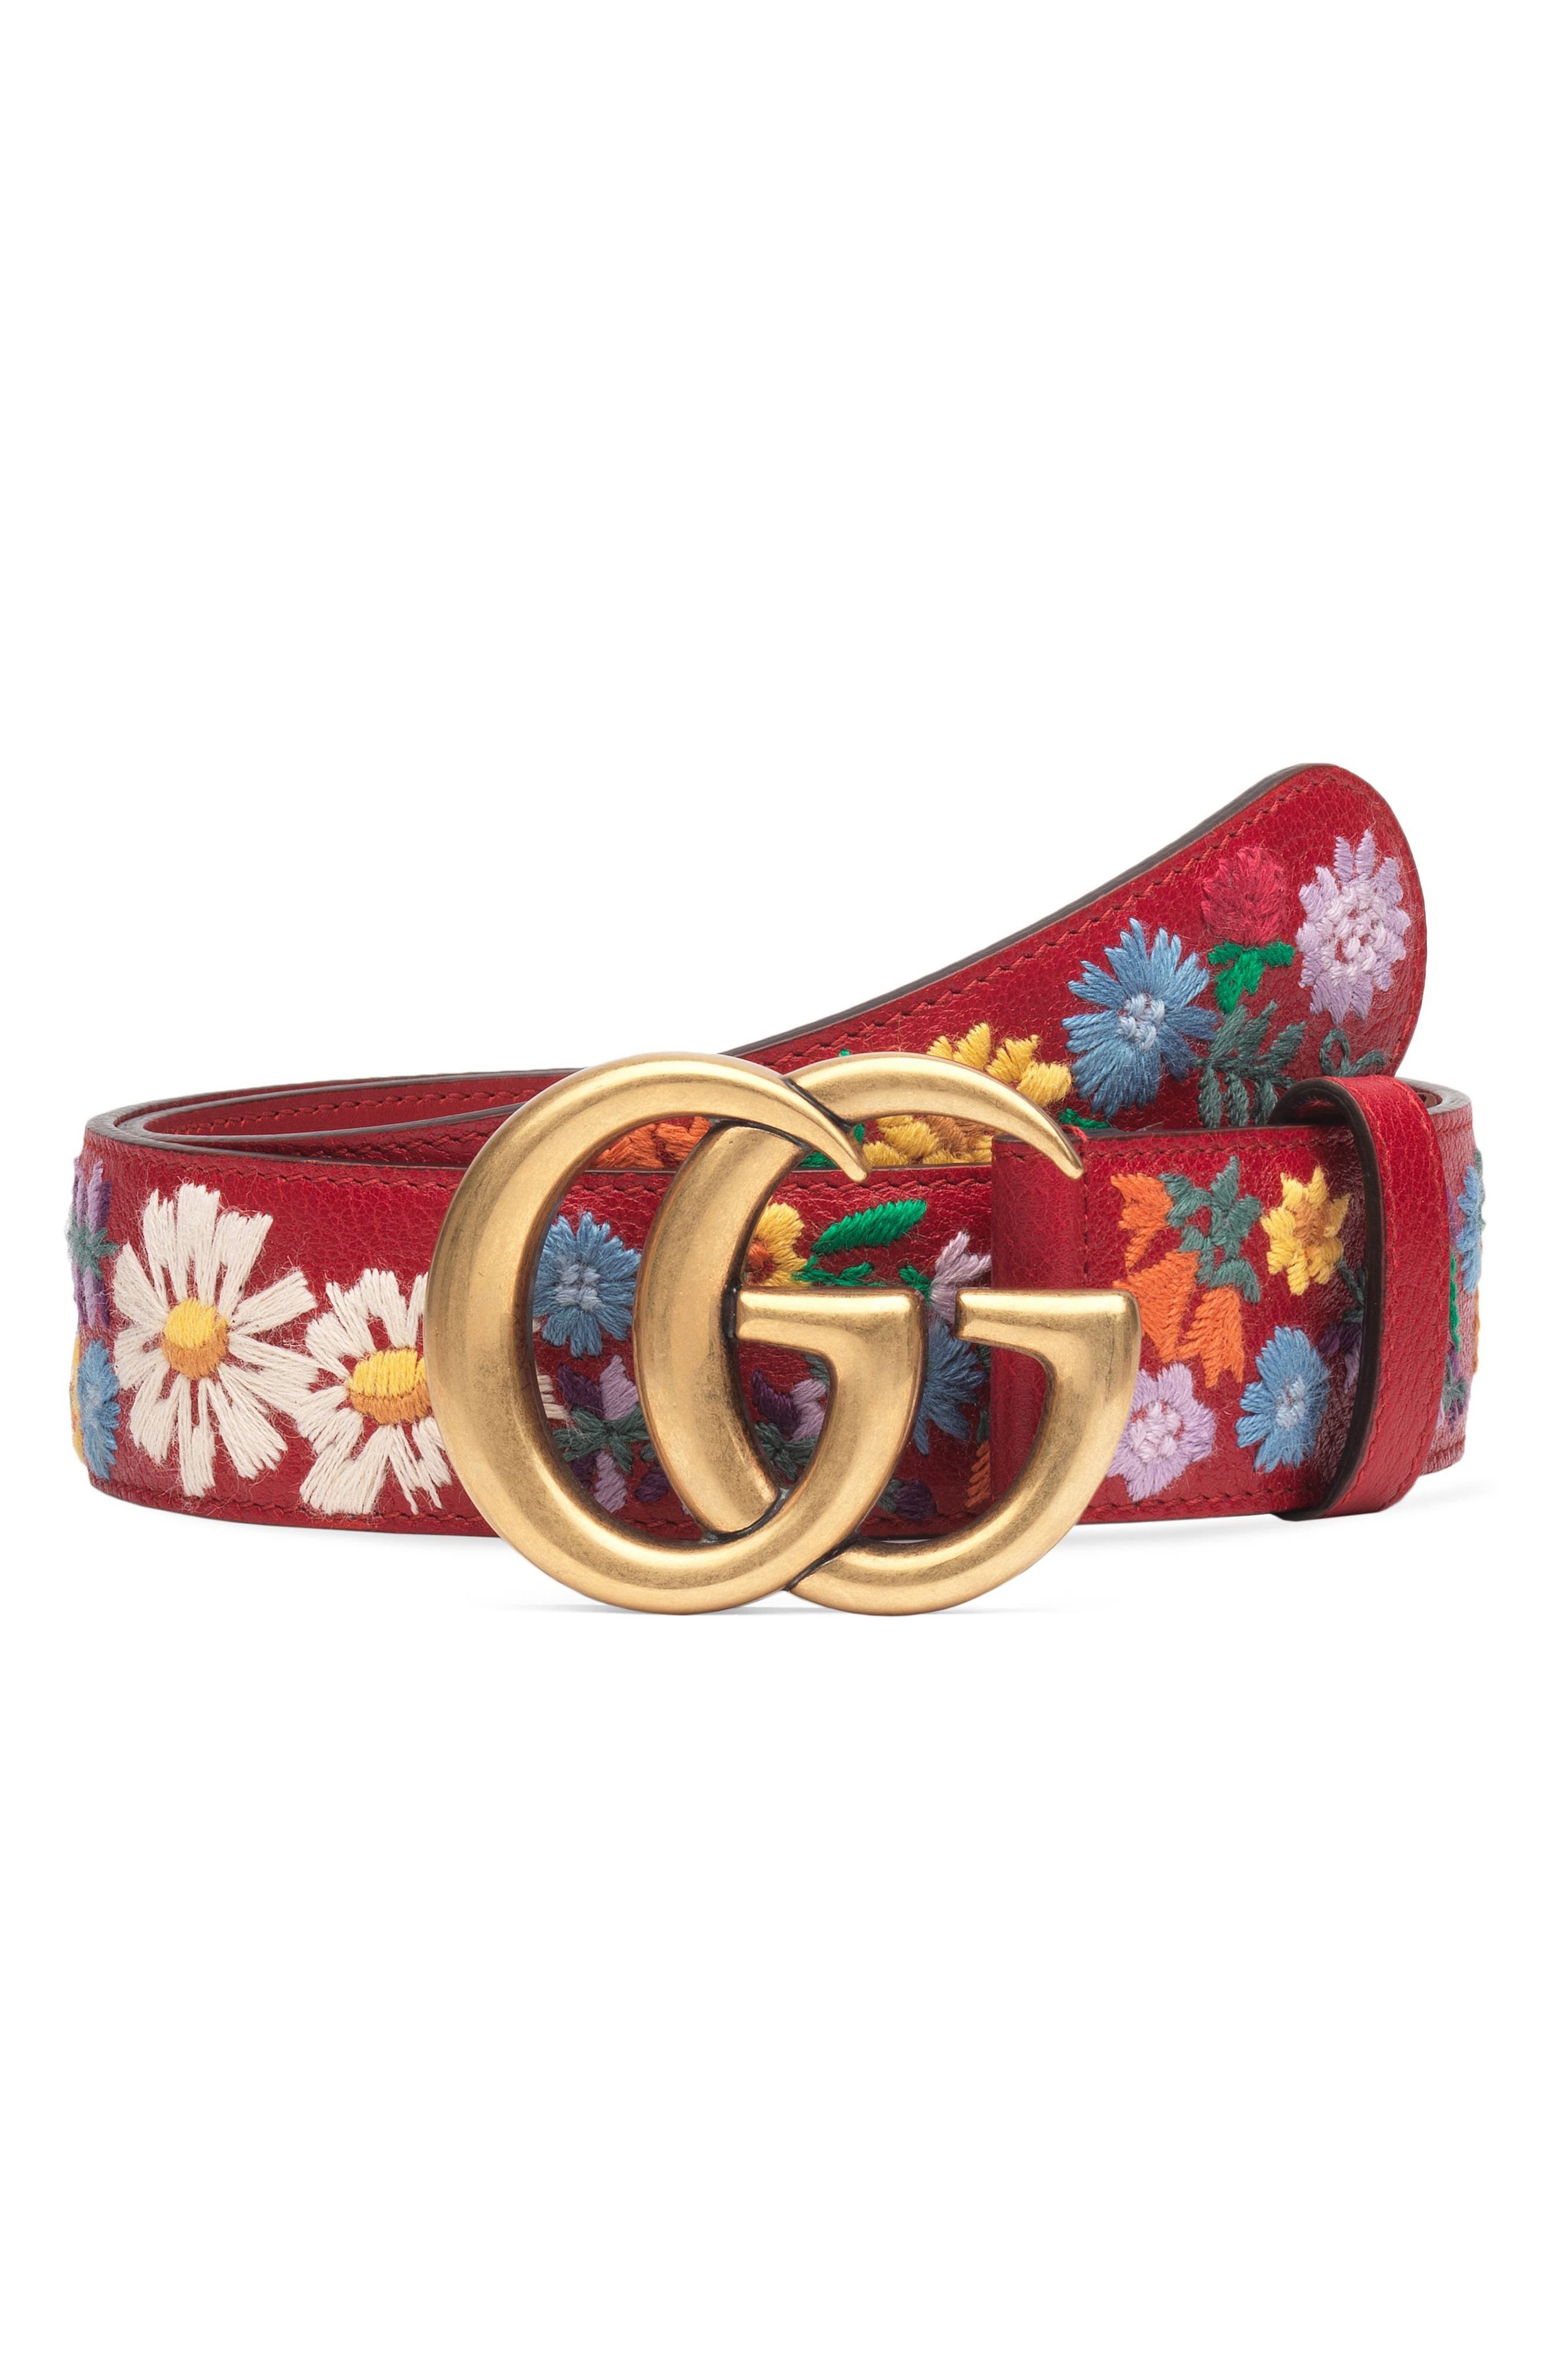 GG Flower Embroidered Calfskin Leather Belt,                             Main thumbnail 1, color,                             600